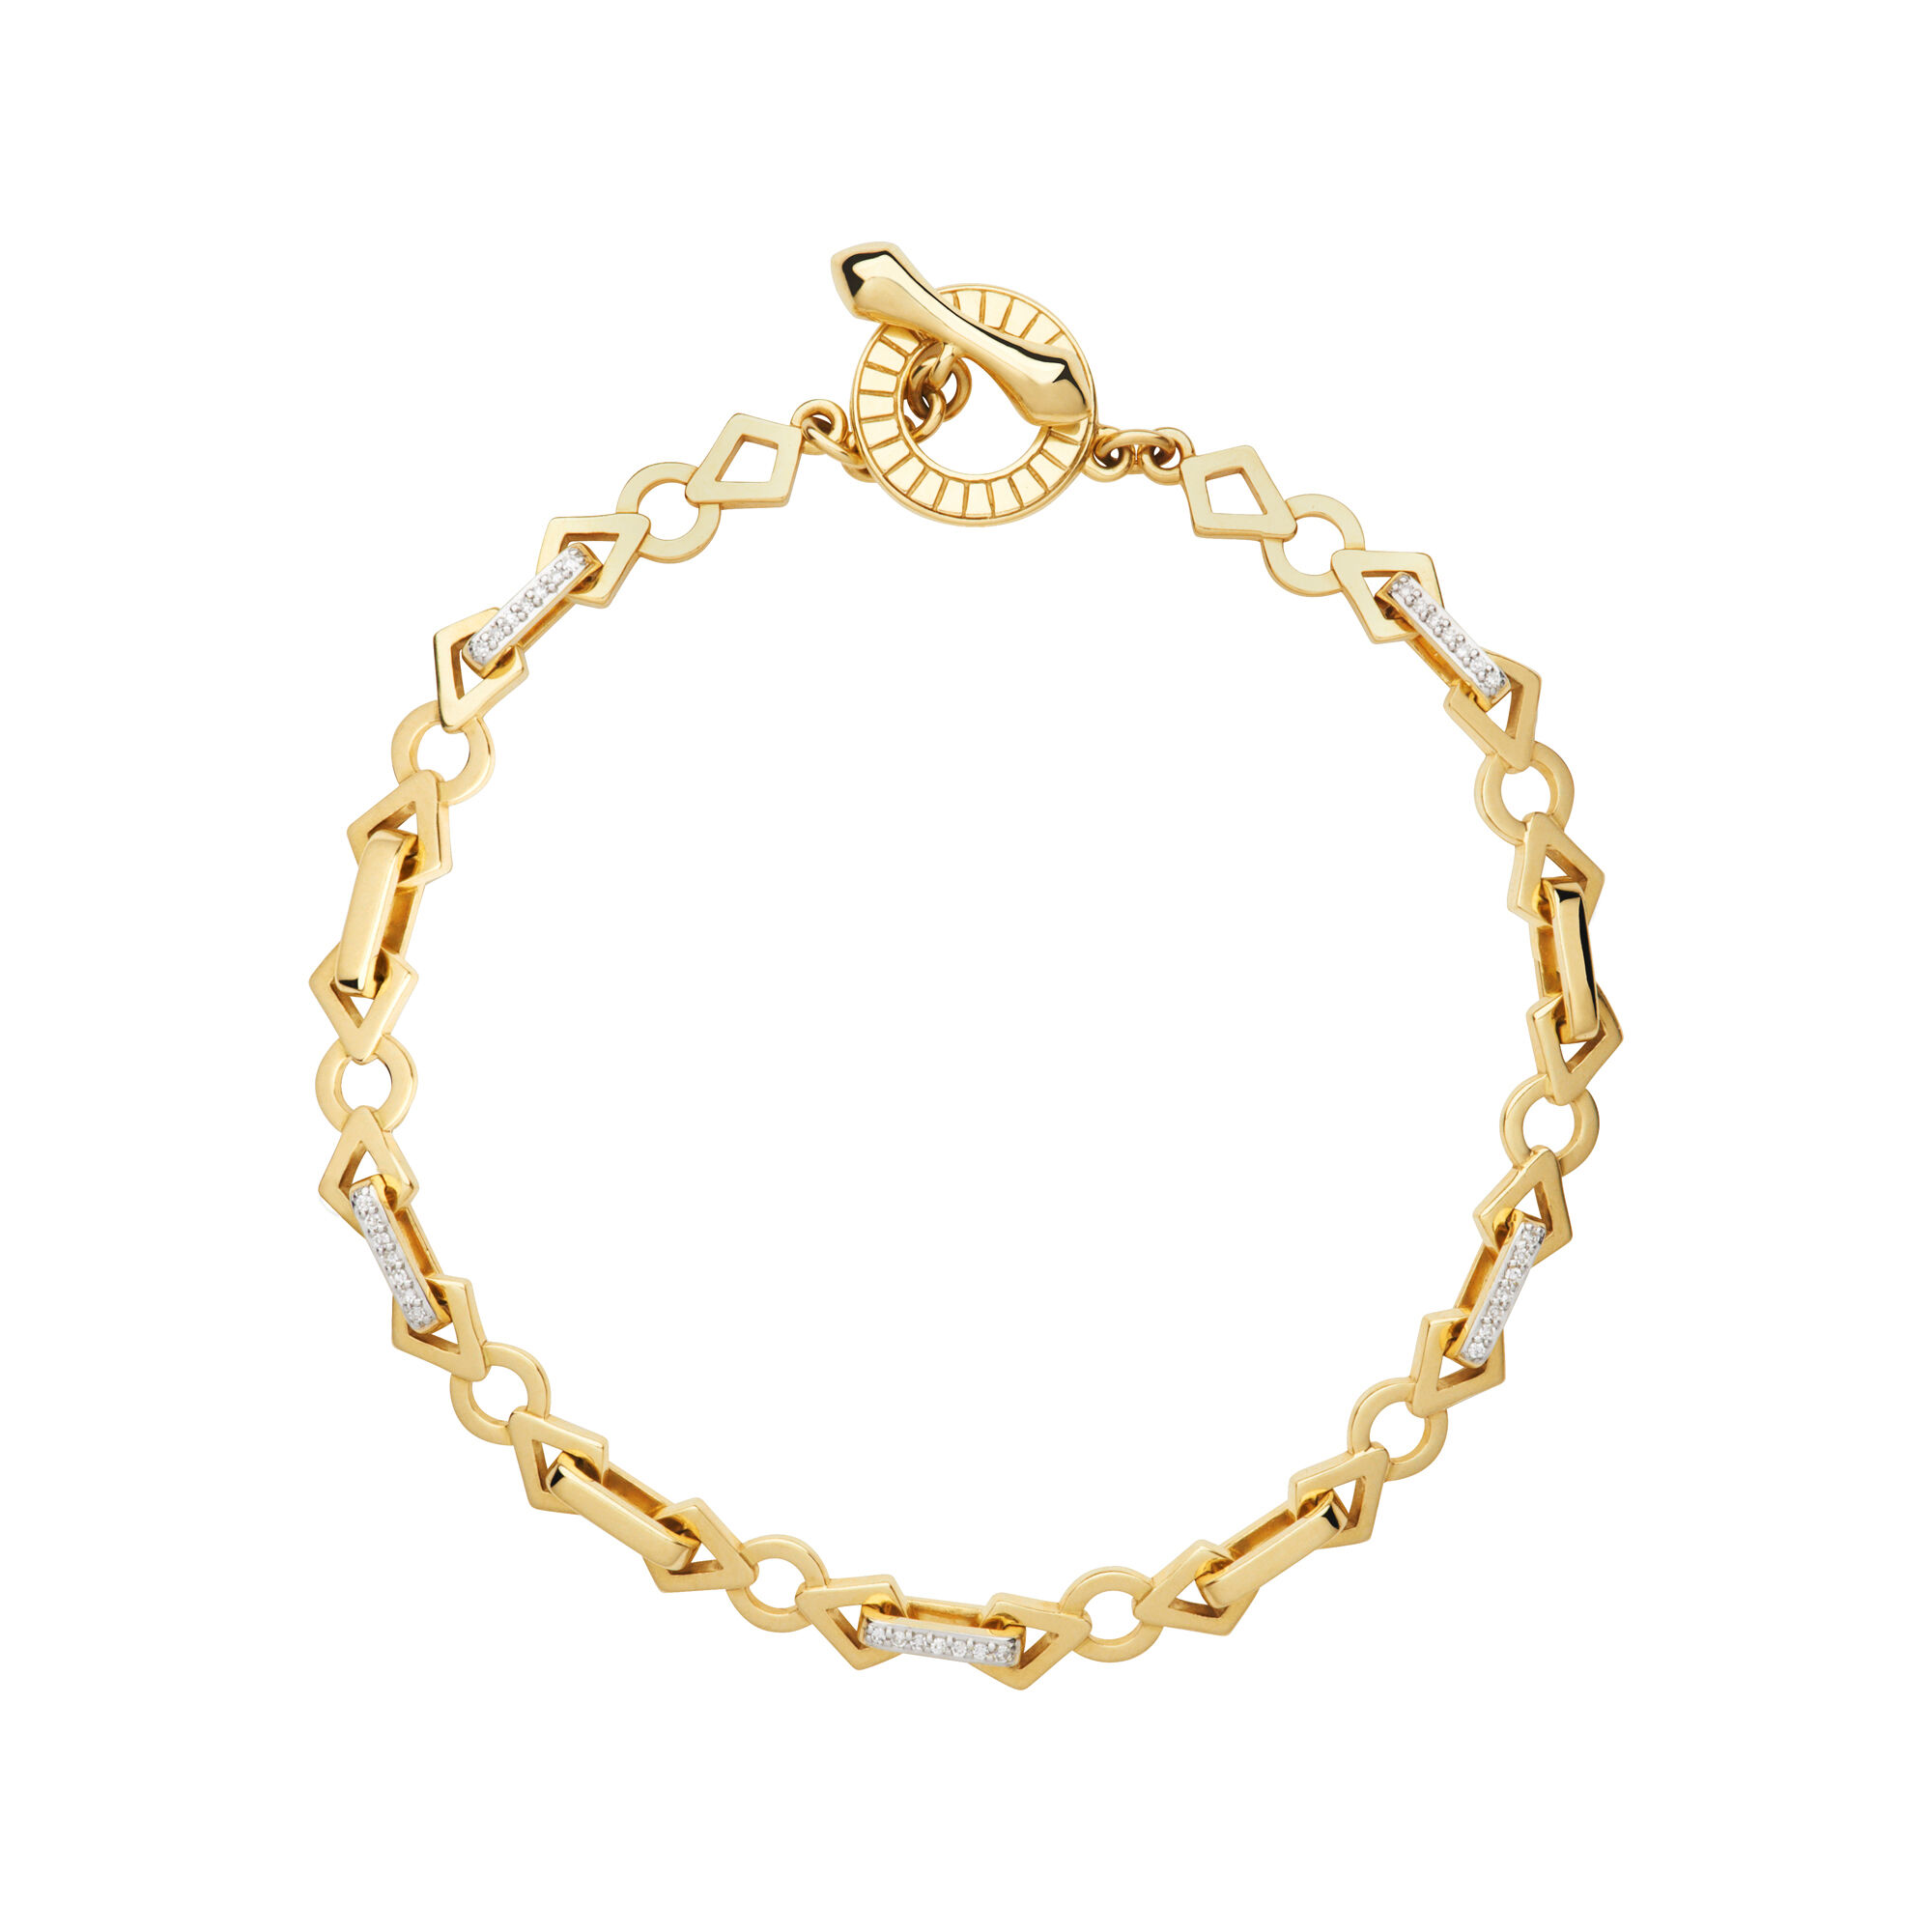 compare by prices charm product en uae design dubai rose gold price anklet in